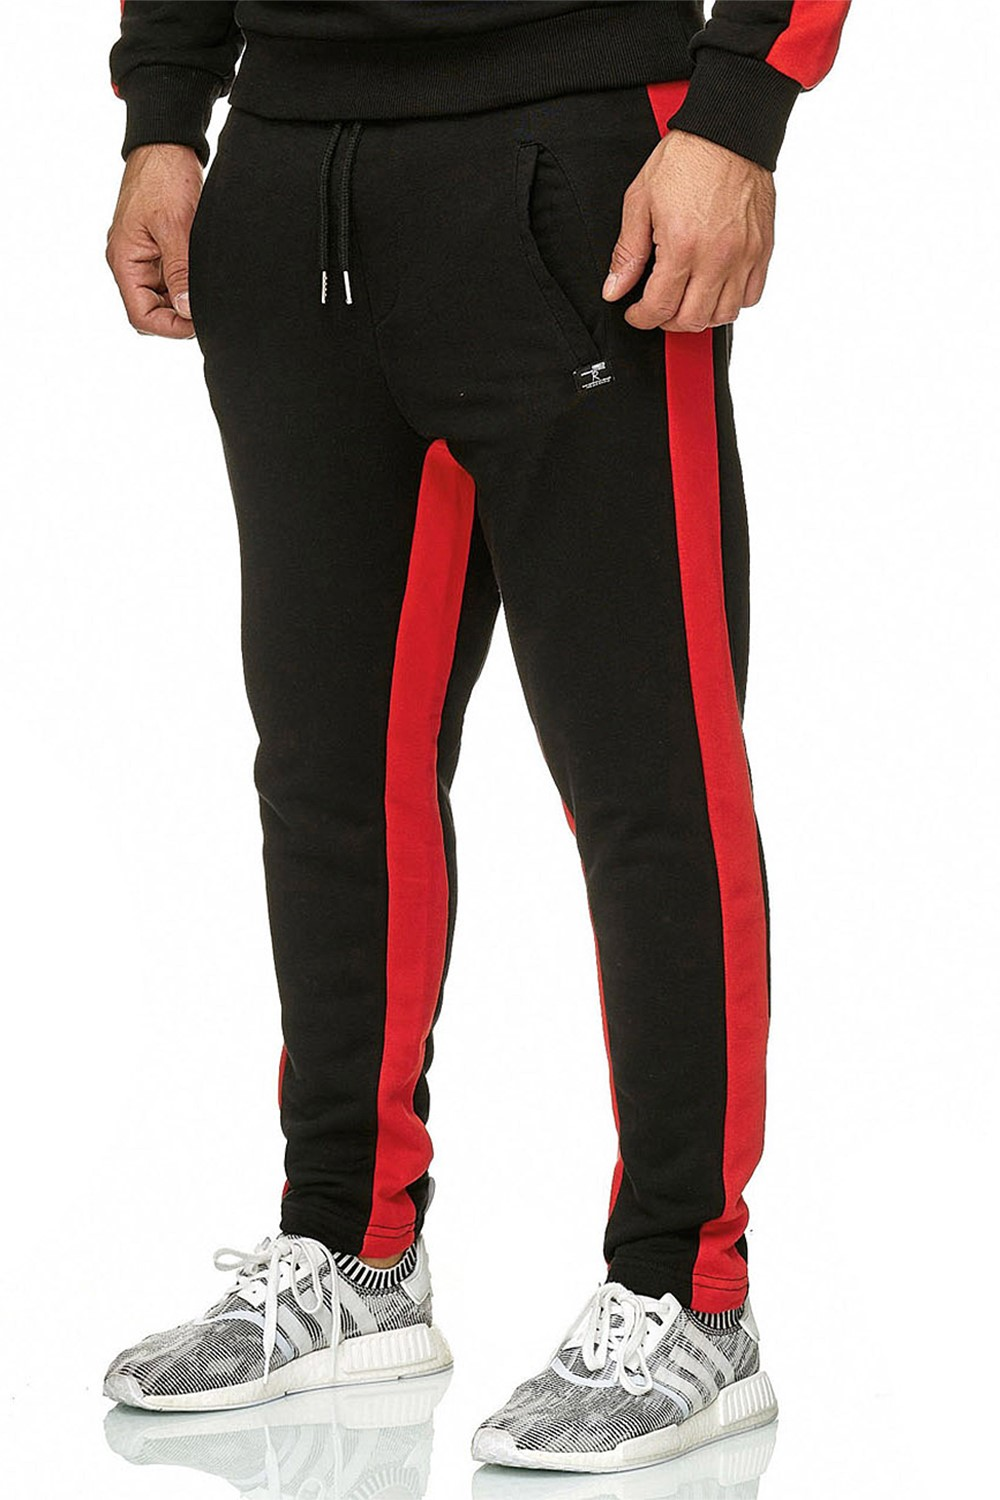 Redbridge-senores-regular-fit-chandal-fitness-sueter-aerobic-pantalones miniatura 14